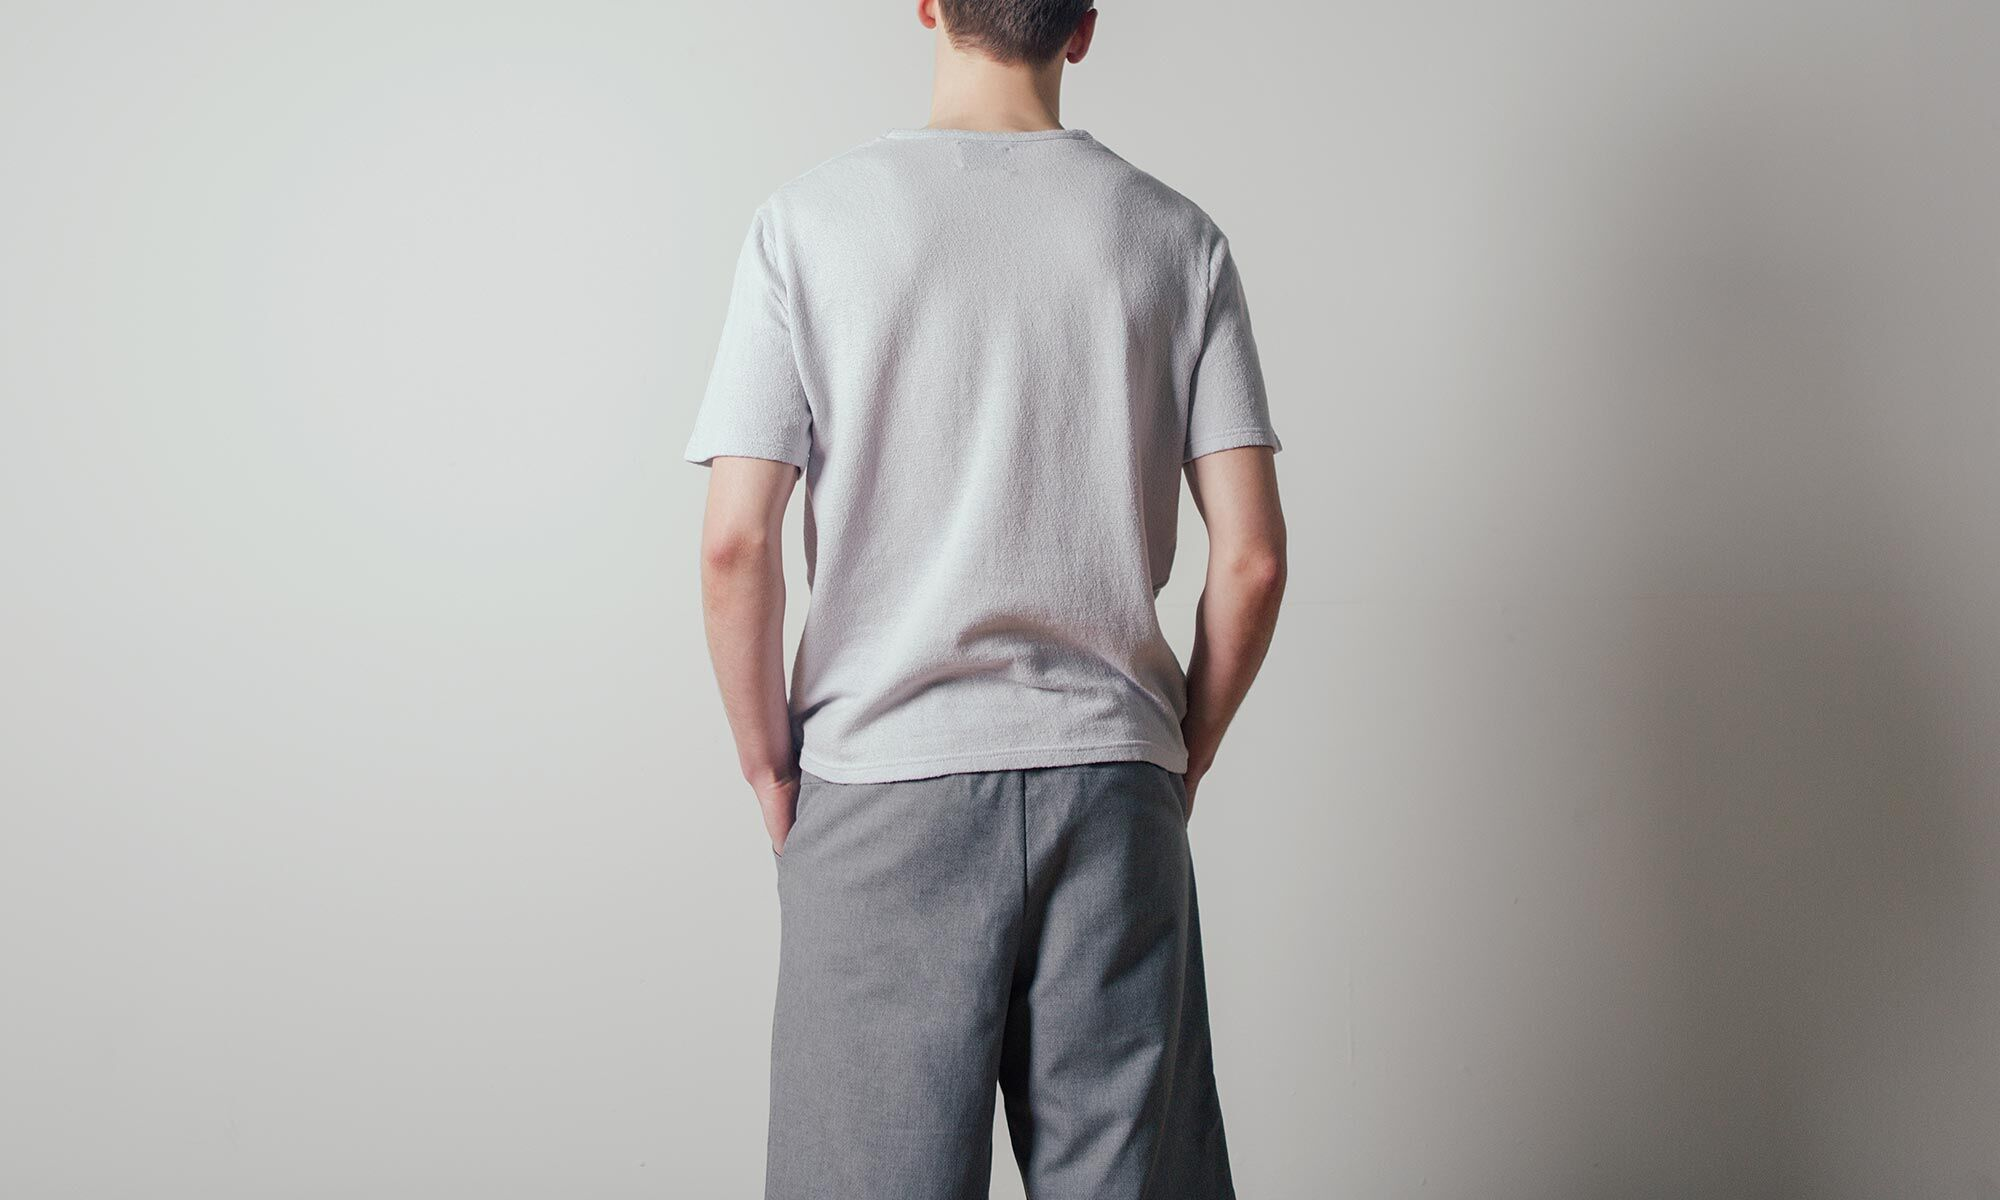 Jungle T-shirt in Ice Gray by Coltesse